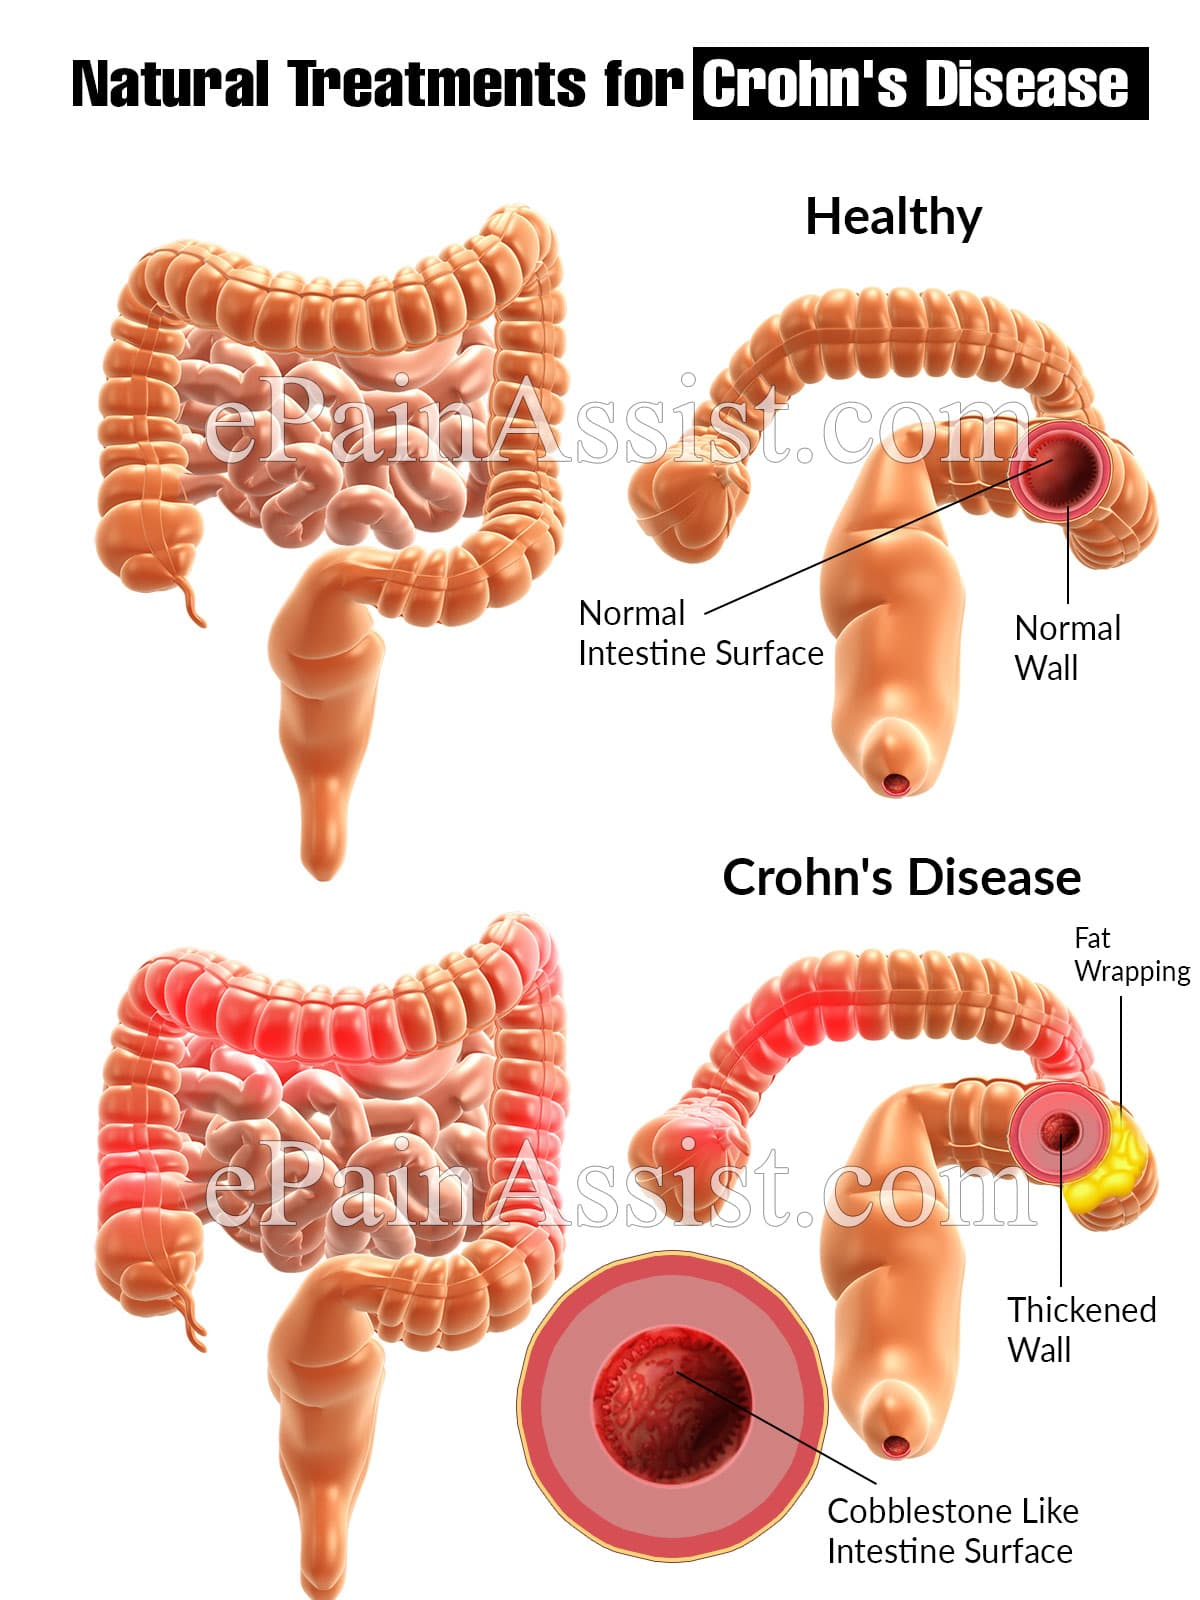 Natural Treatments for Crohn's Disease